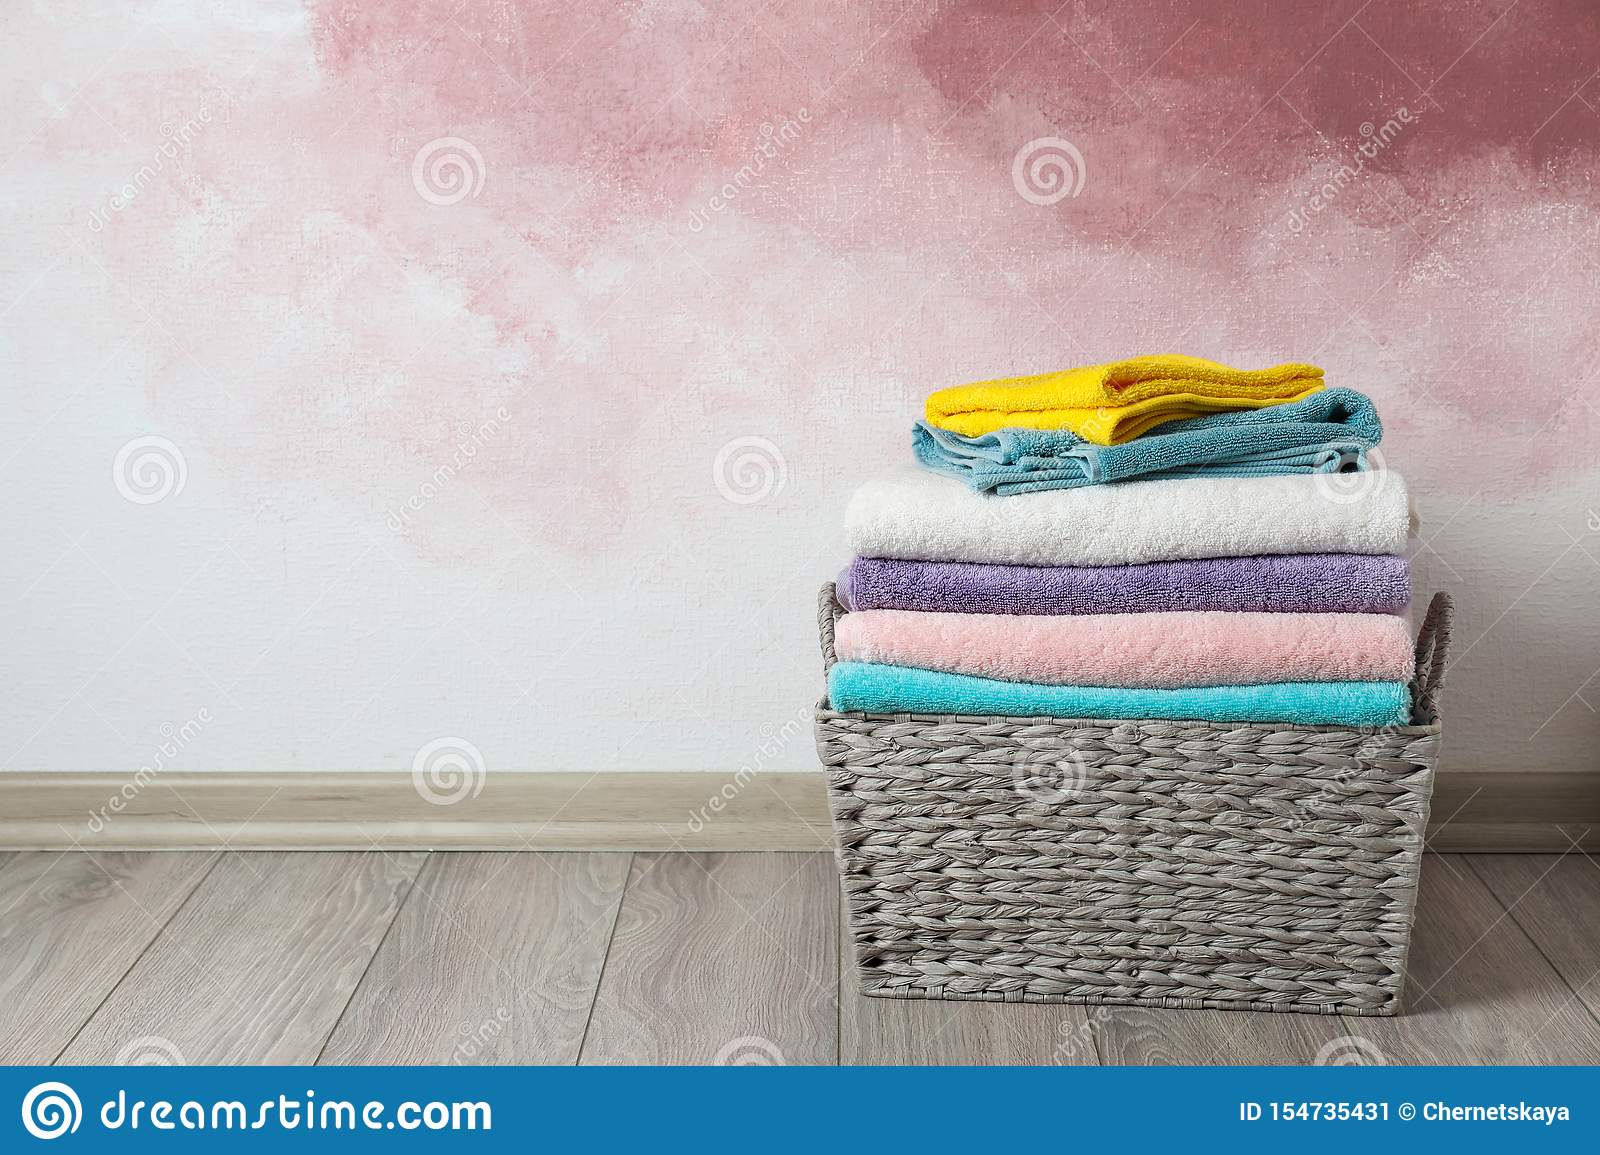 Basket with clean laundry on wooden floor near pink wall, space for